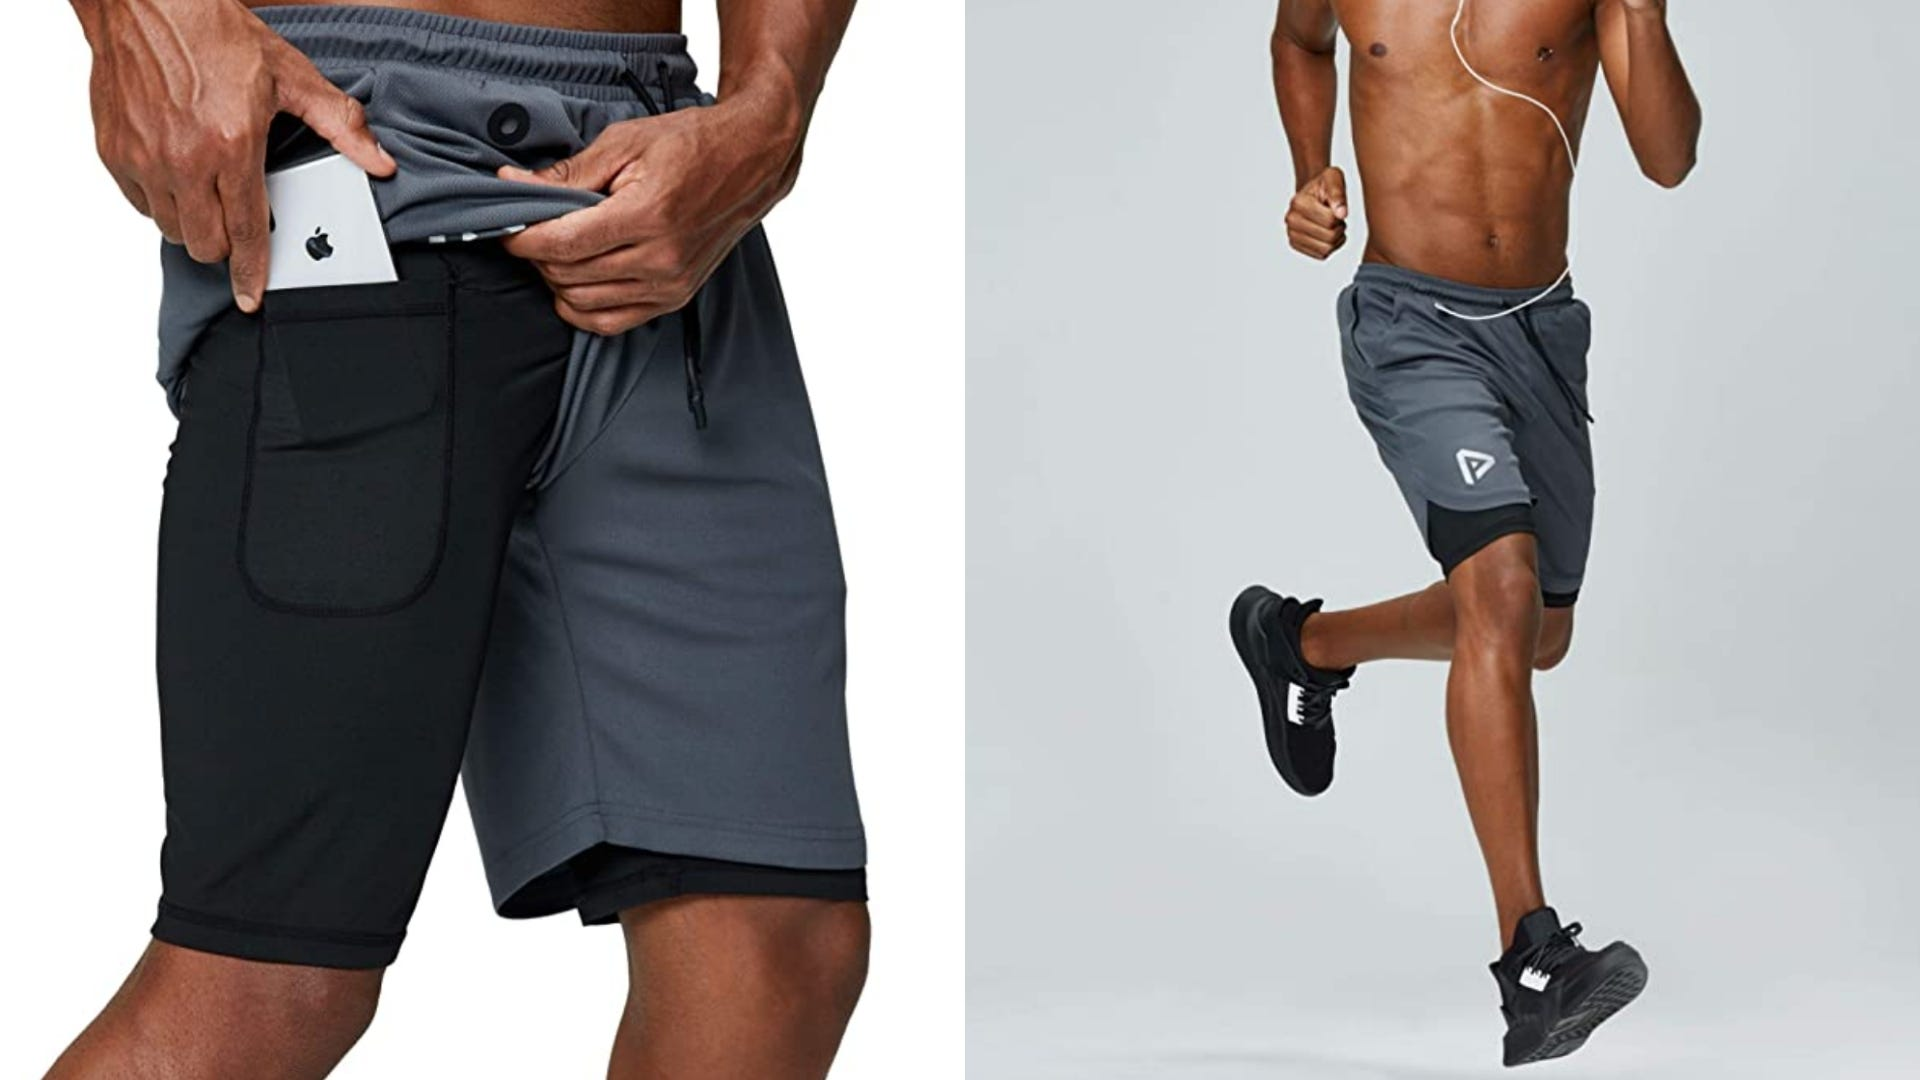 A man puts a phone in the pocket of his shorts and he is running.